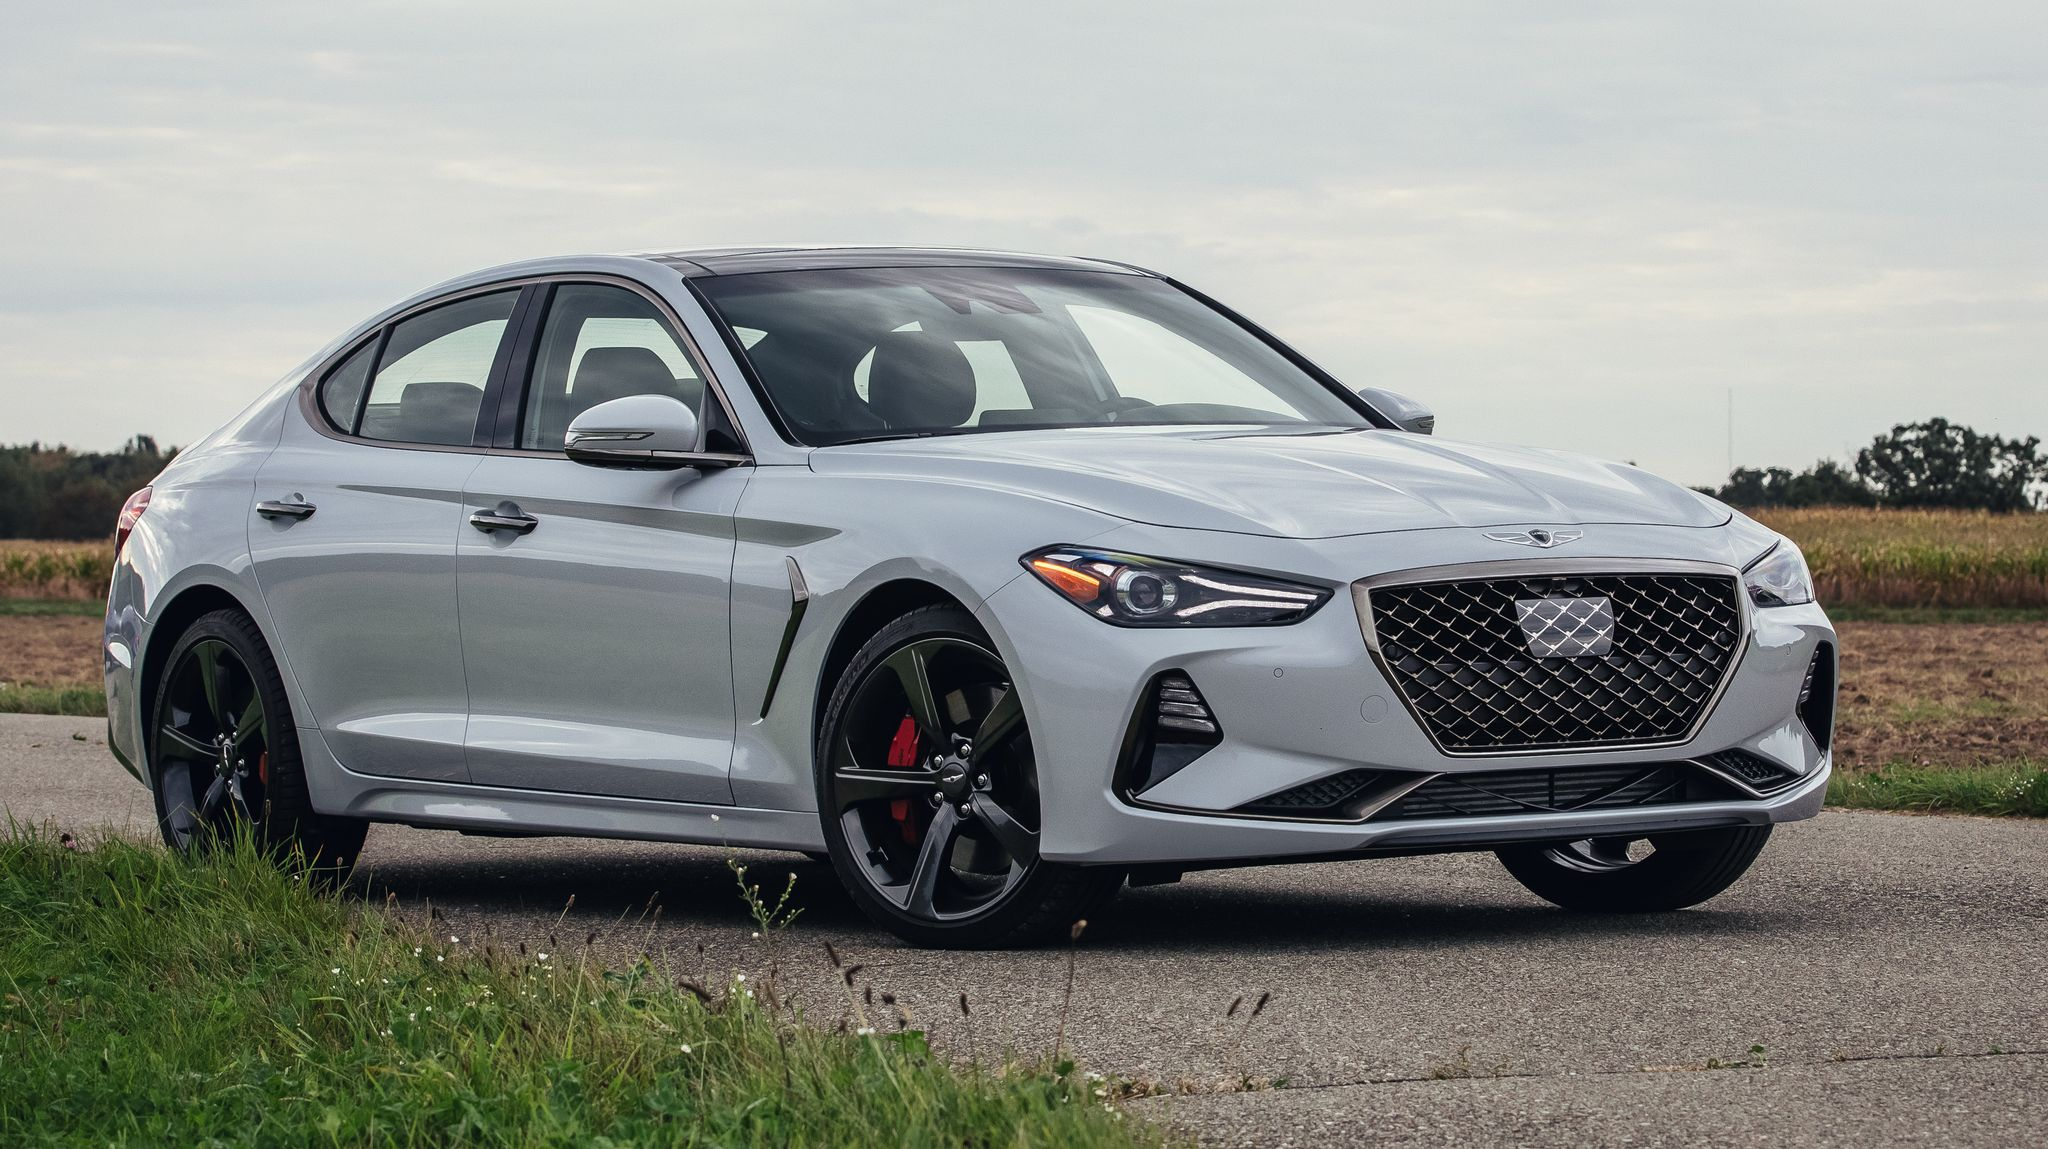 The 2020 Genesis G70 challenges the German luxury sport sedans.